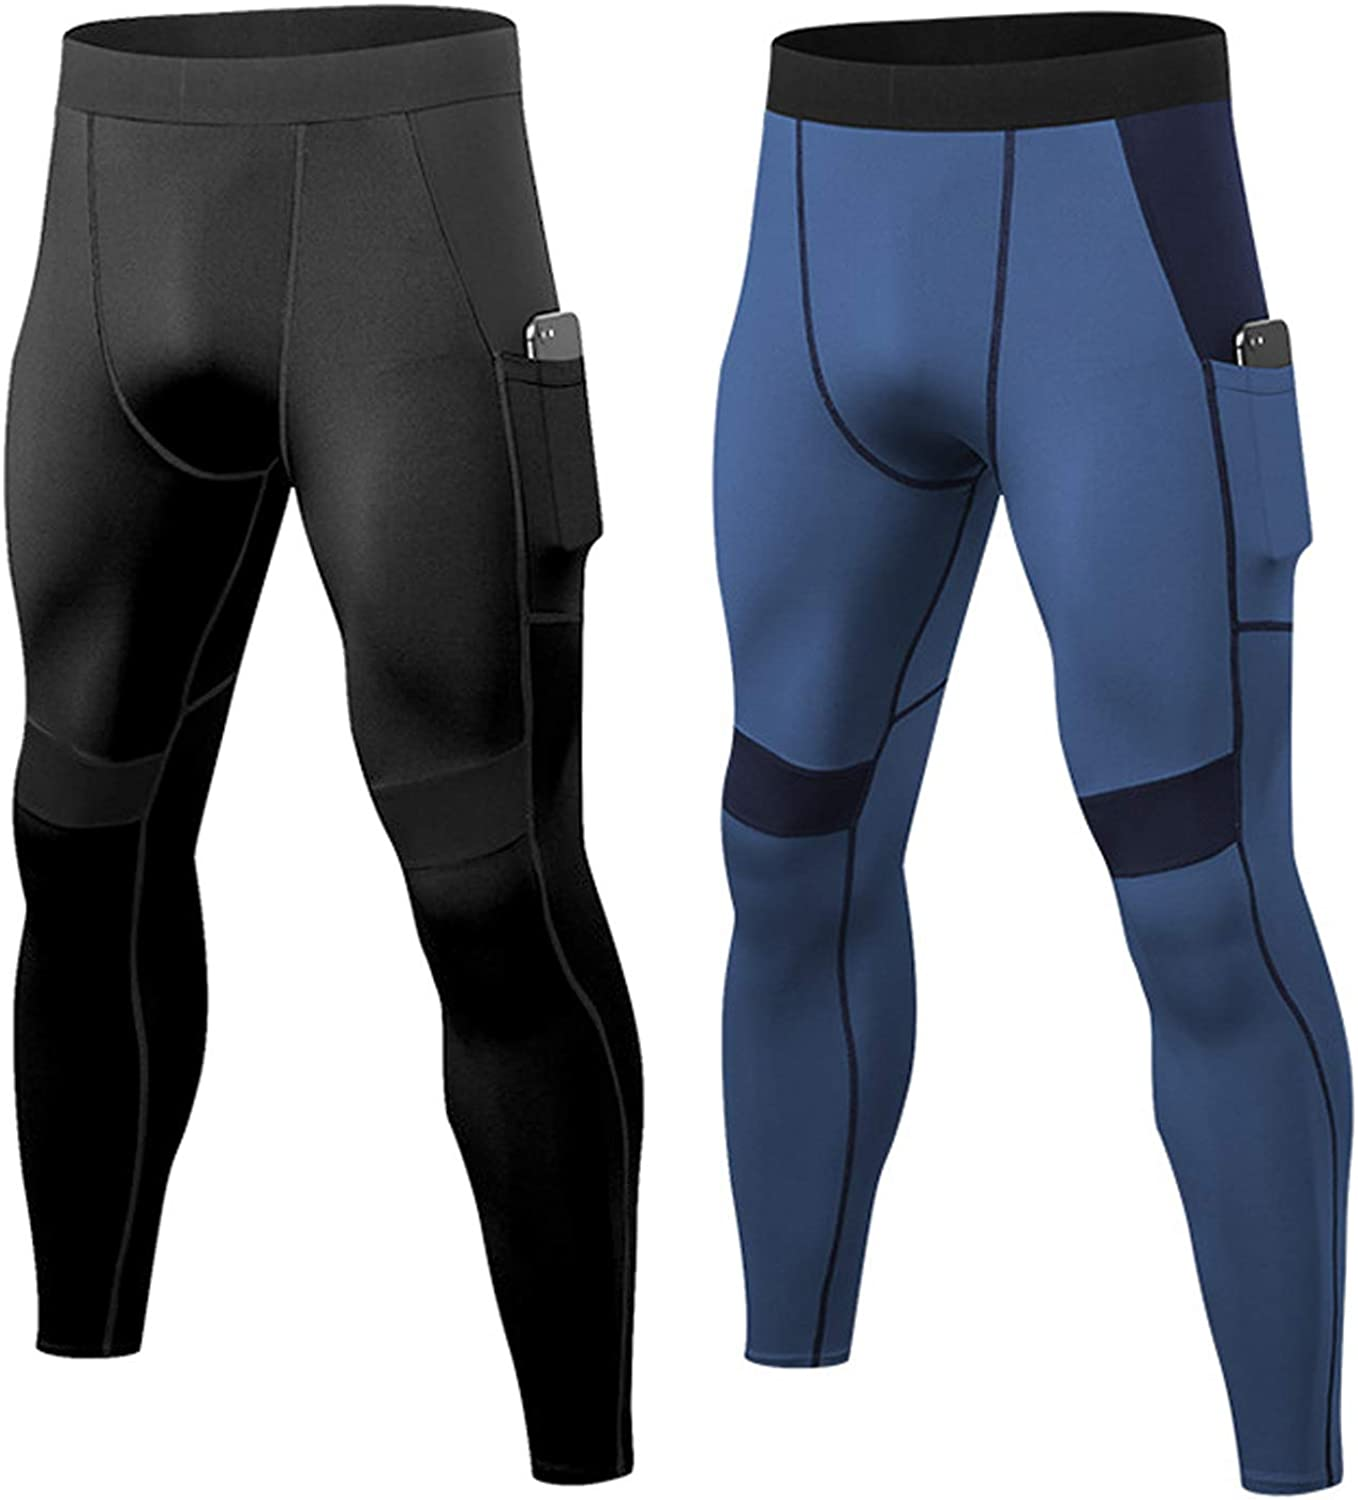 2 Packs Mens Compression Pants with Pockets Athletic Baselayer Bottoms Gym Workout Leggings Running Tights